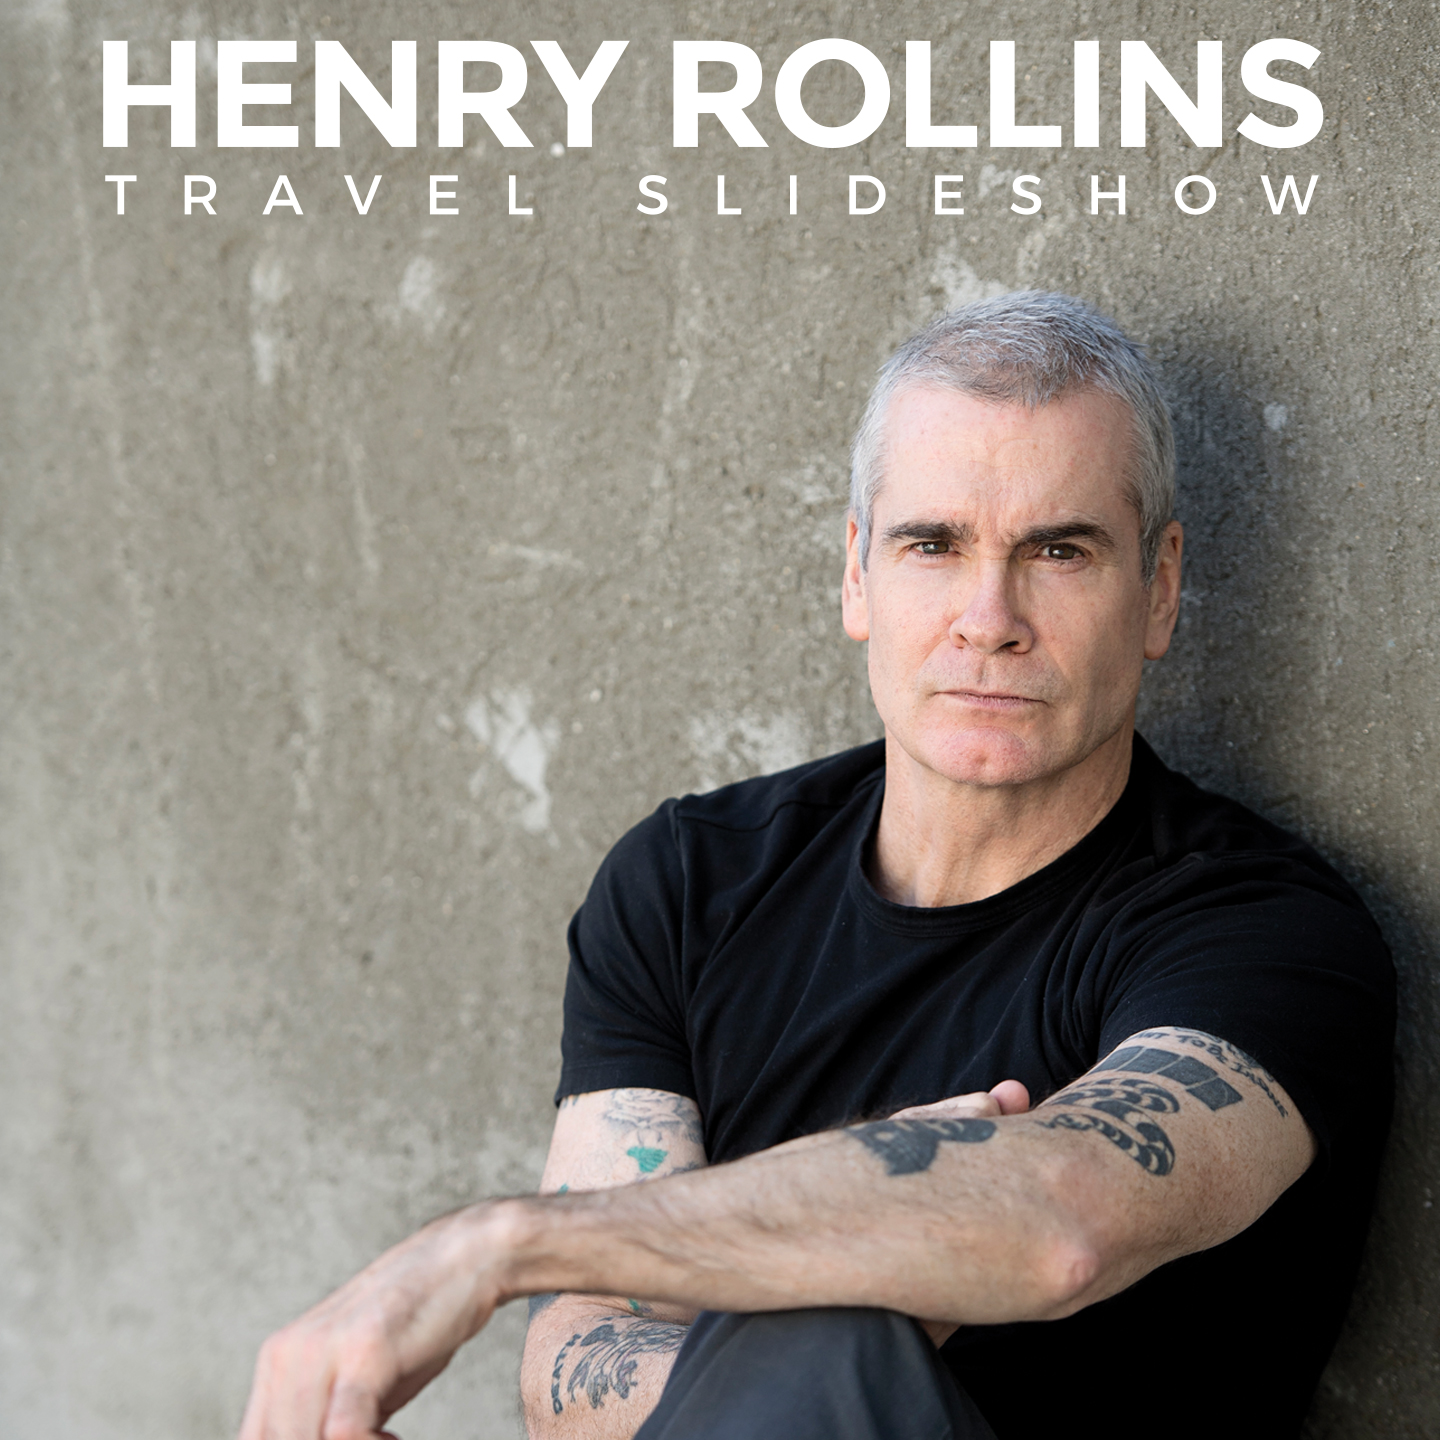 Henry Rollins – Travel Slideshow